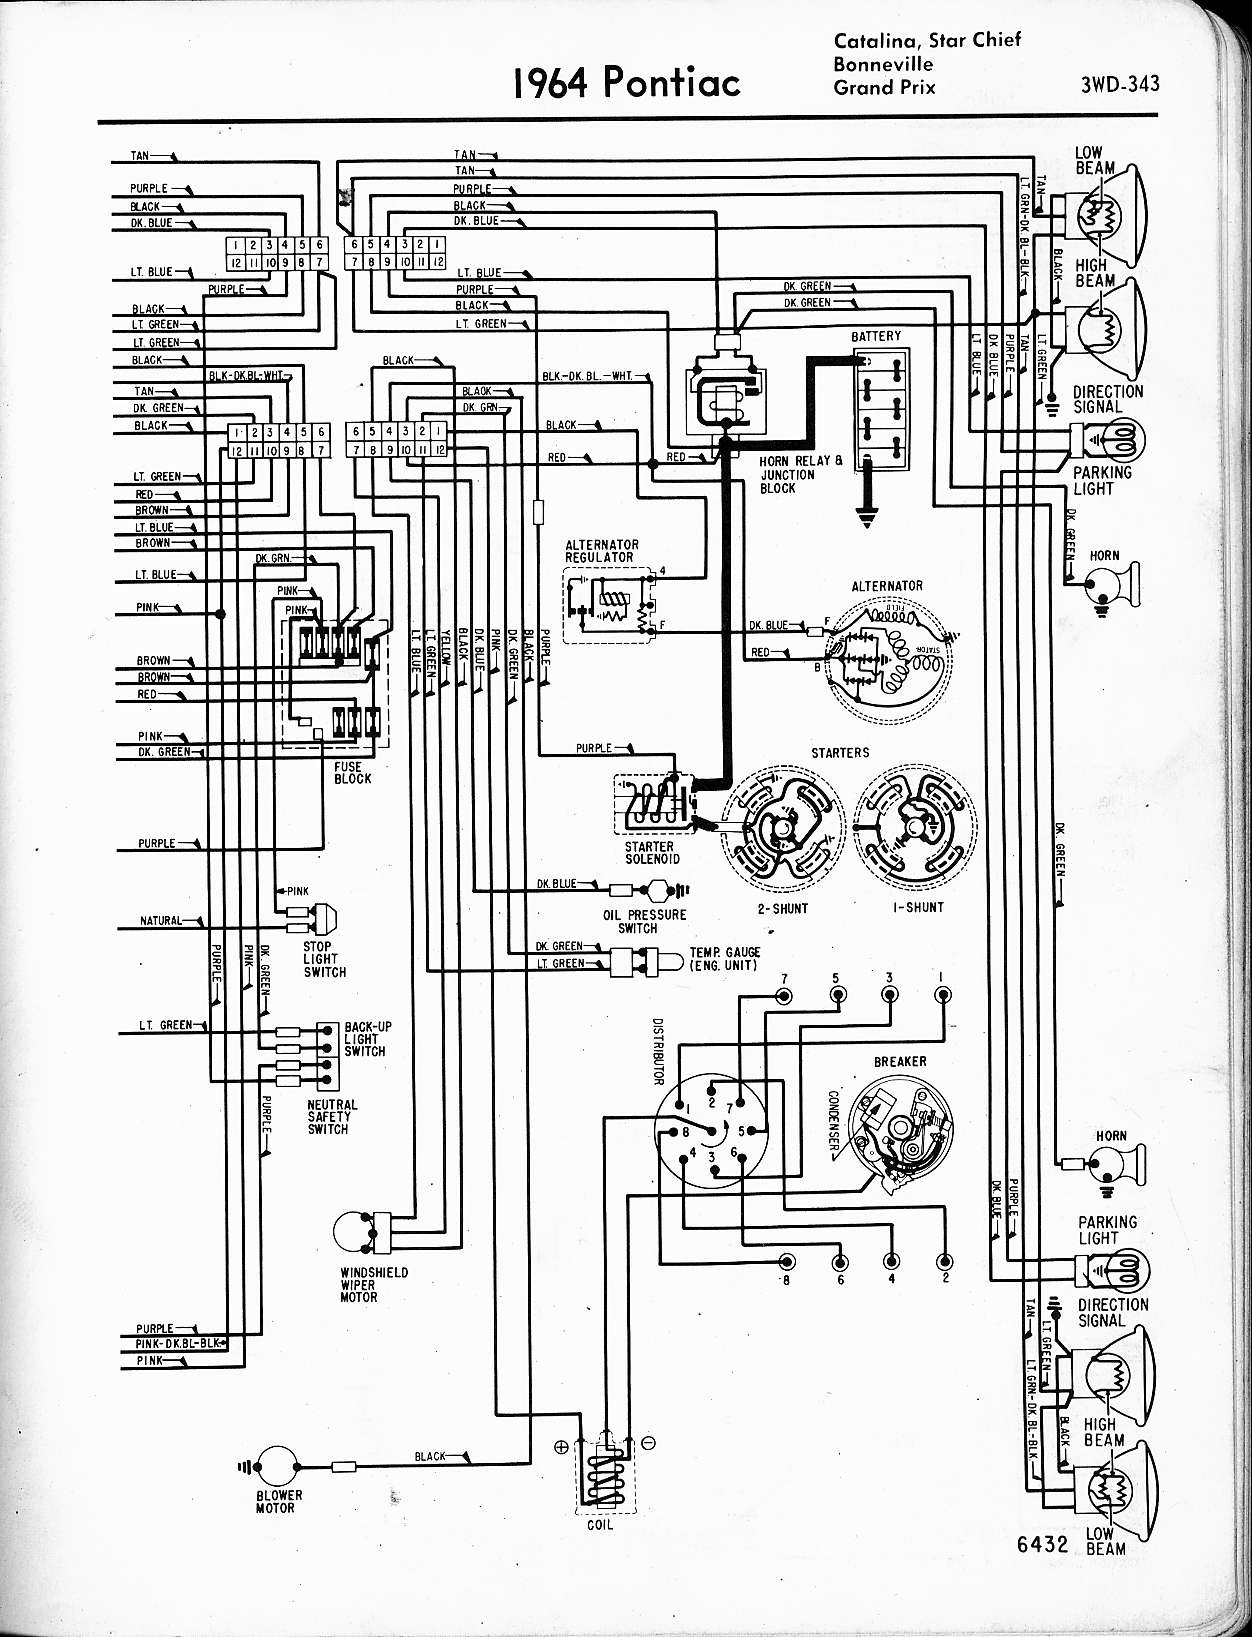 wiring diagram pontiac gto judge free download data wiring diagram 66 GTO Wiring-Diagram wiring diagram pontiac gto judge free download wiring diagram 1969 pontiac gto wiring diagram 66